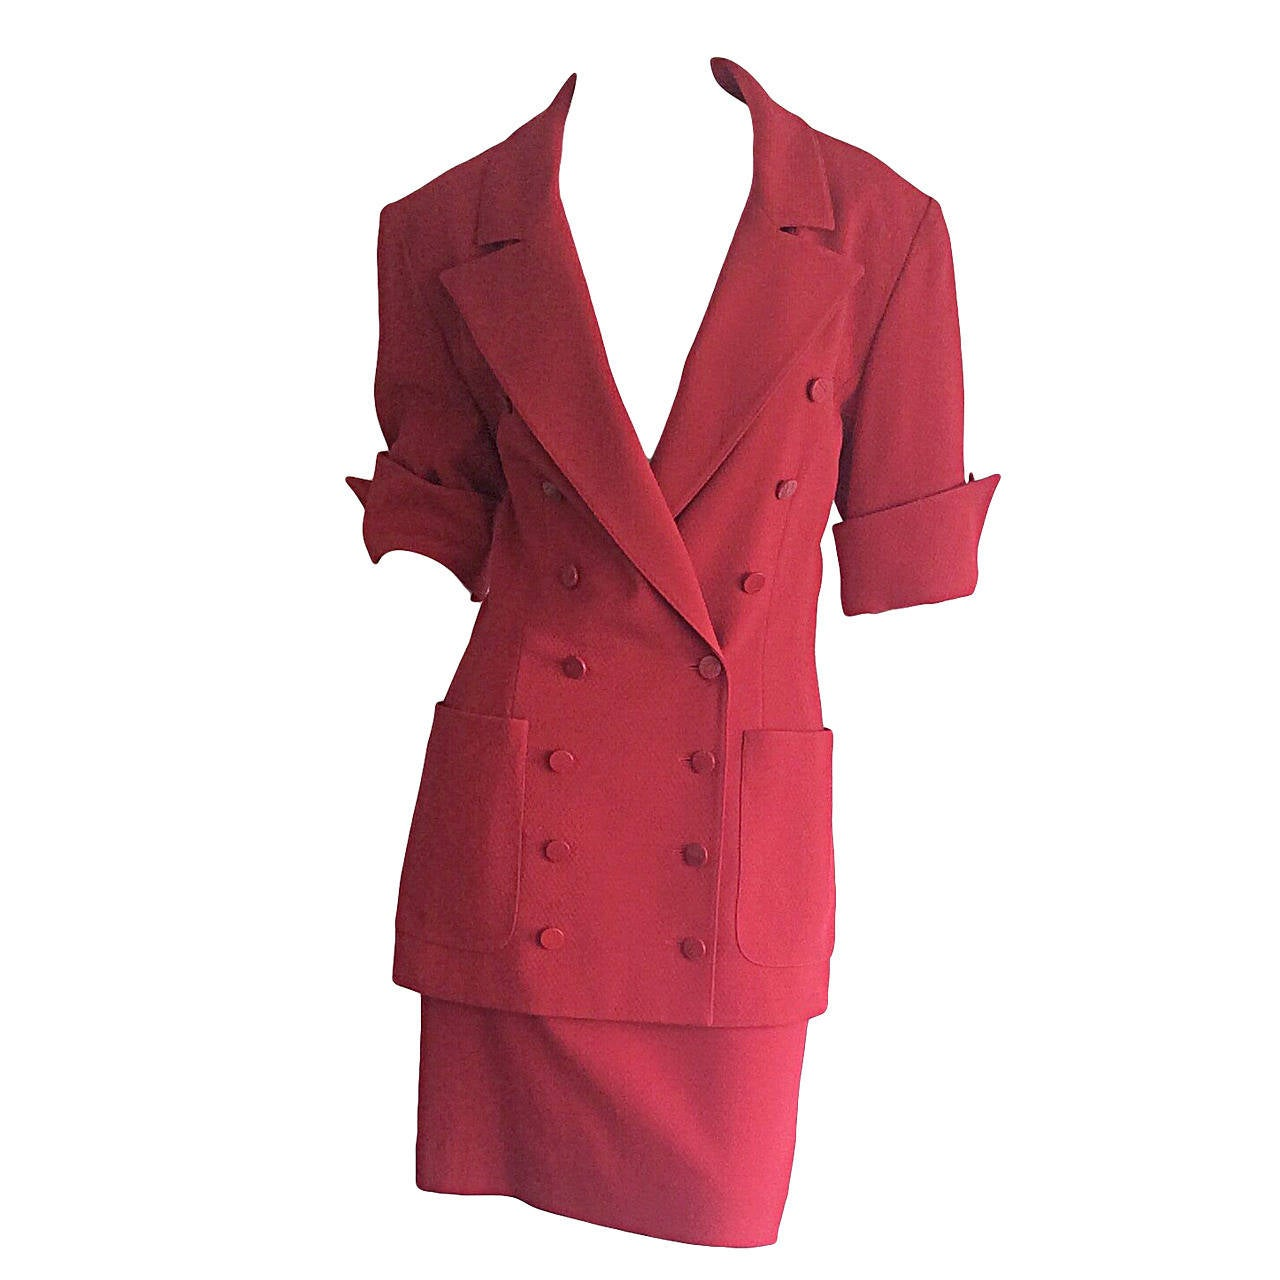 Gorgeous 1990s Vintage Karl Lagerfeld Bright Red Double Breasted Skirt Suit For Sale